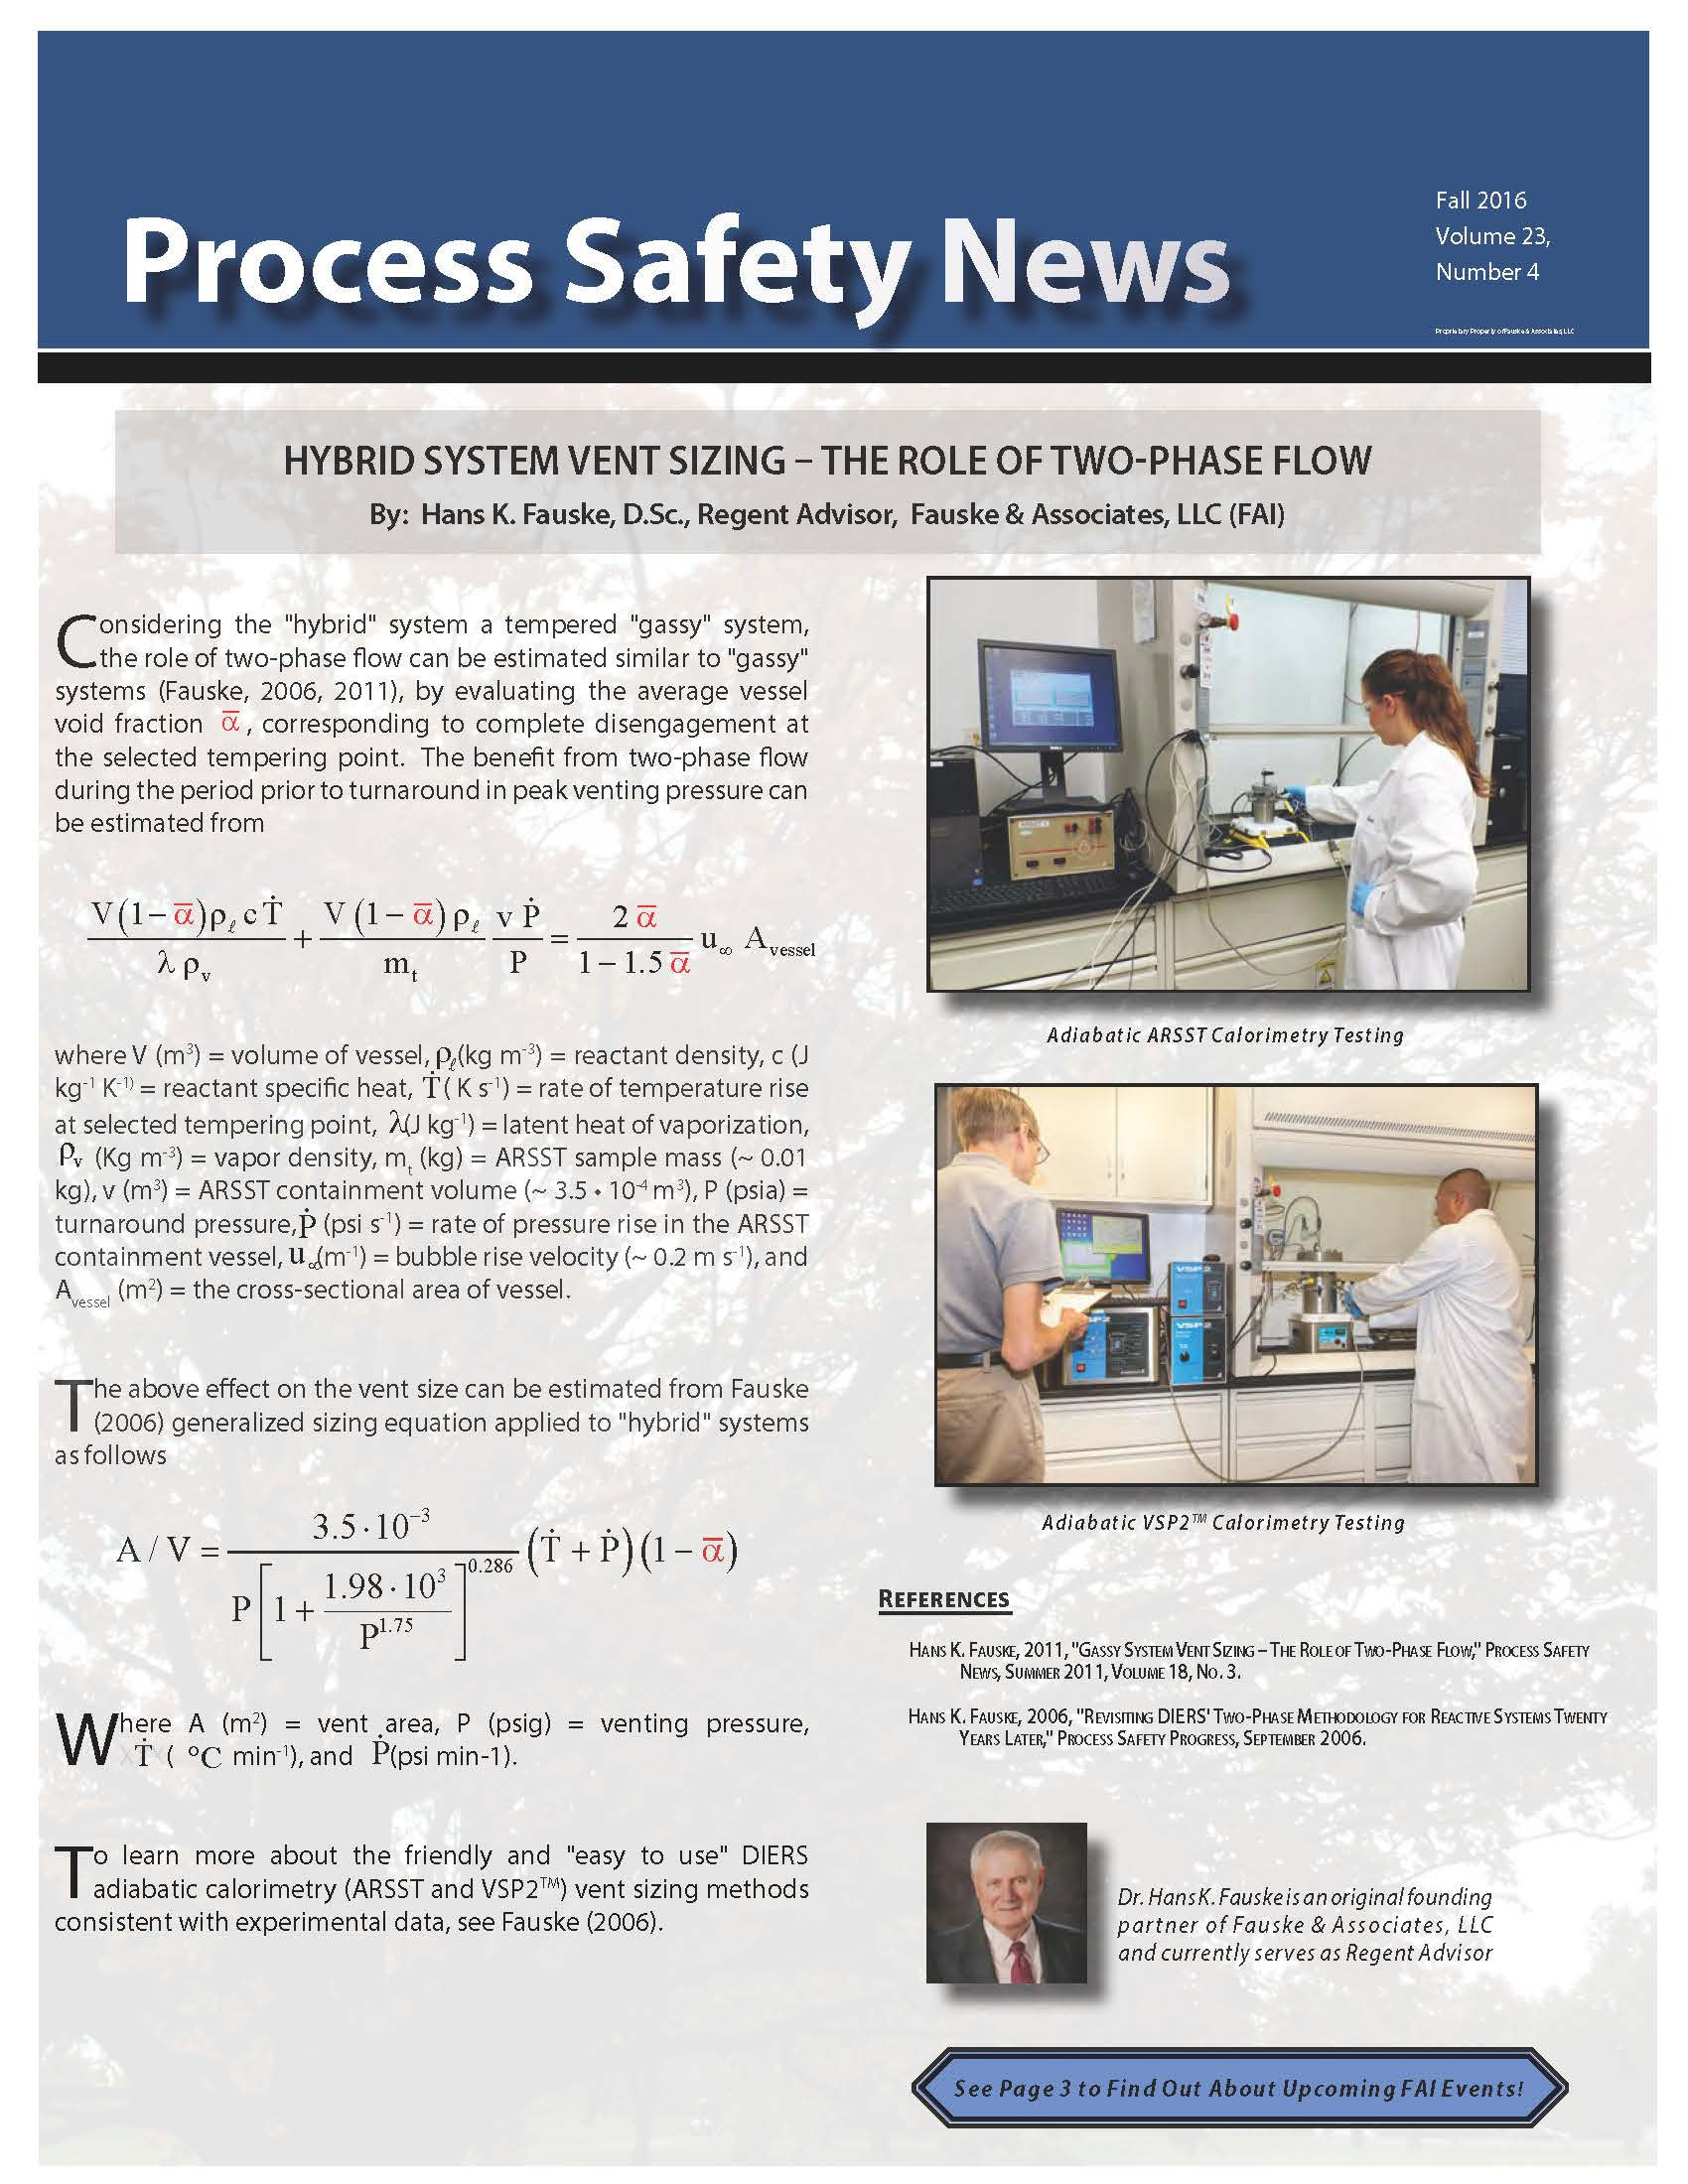 Process Safety News FALL 2016_Web_Page_01.jpg